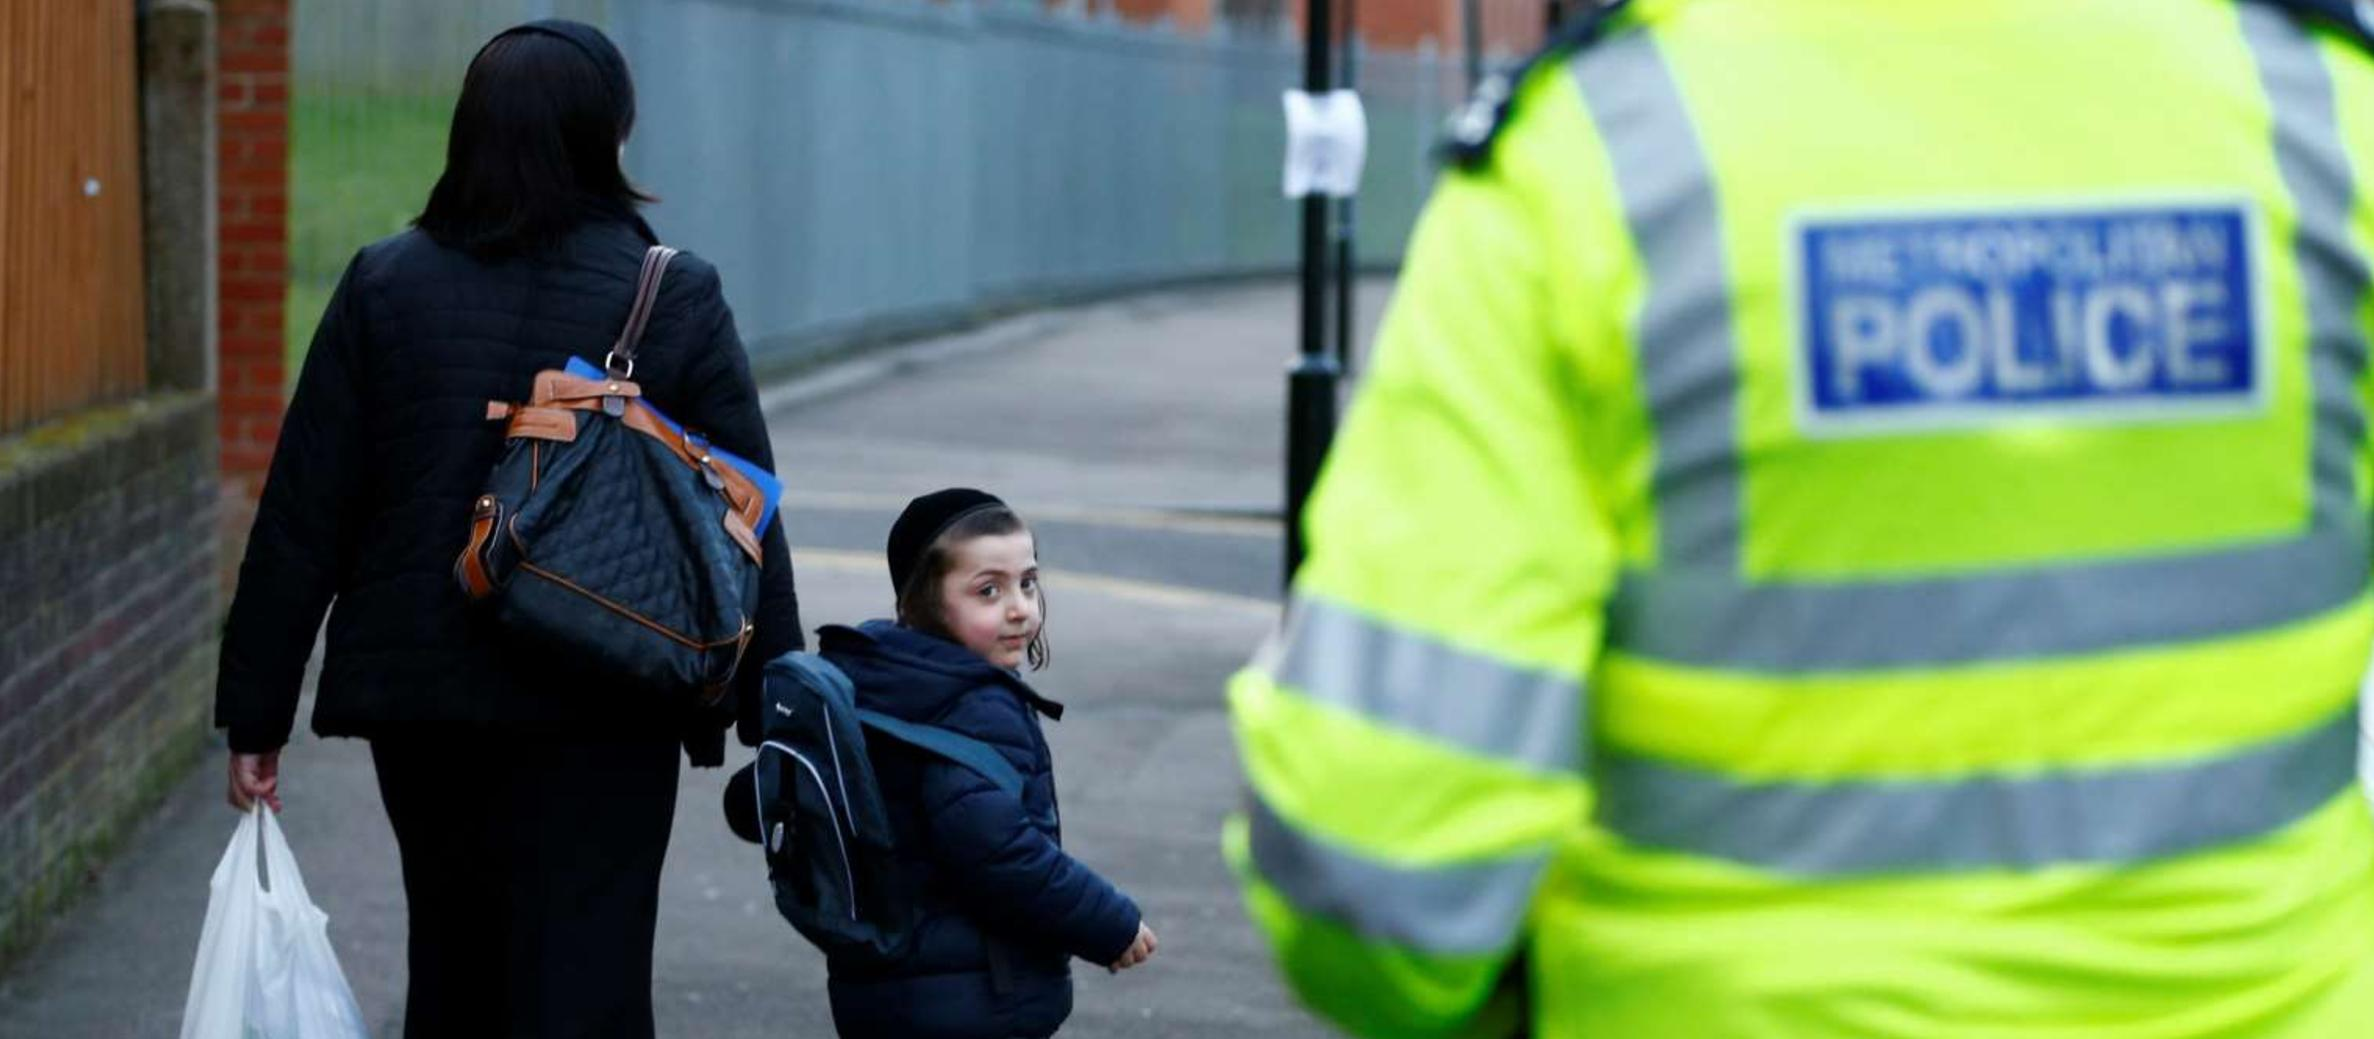 Multiple bomb threats prompt evacuations of Jewish centres and schools across UK and USA